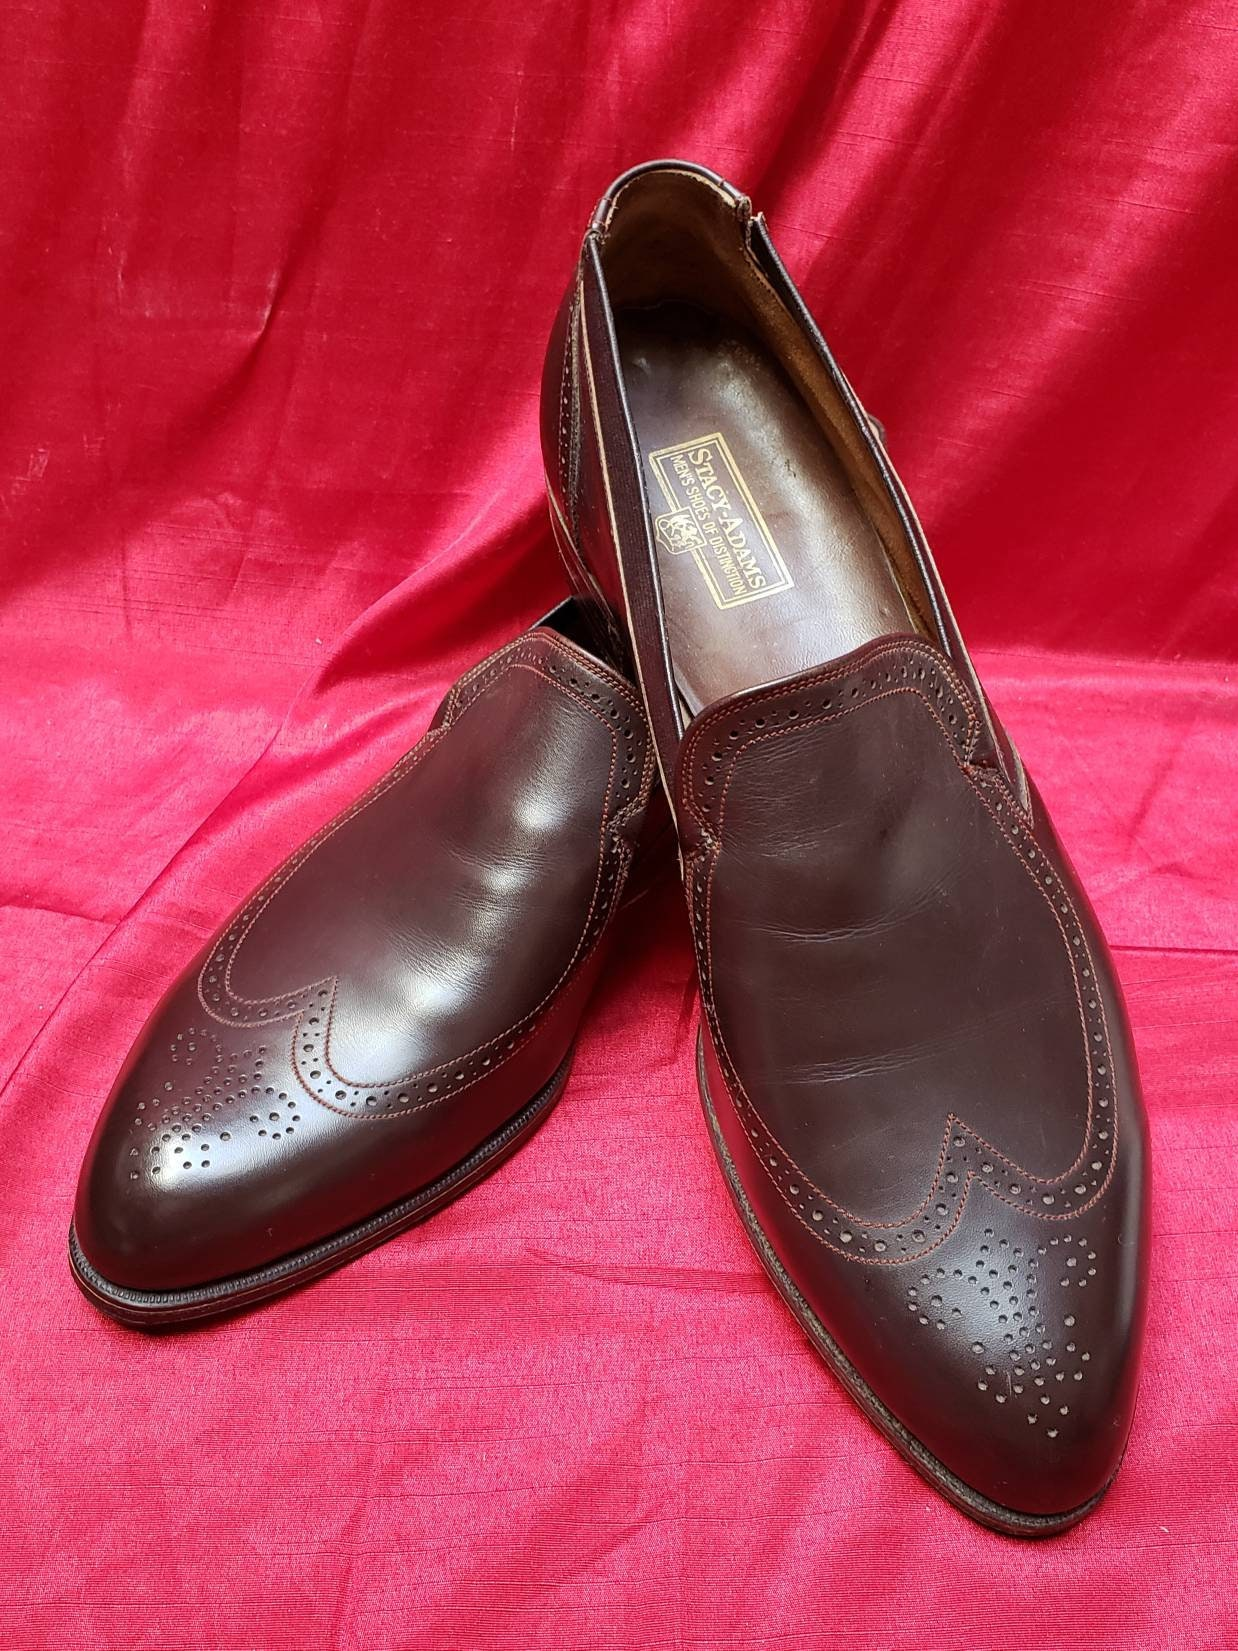 stacy adams ~ de ~ quasi ~ vintage ~ glisser ons chaussures ~ quasi ~ neuf ~ style ~ hommes  ; s ~ ~ n ~ ~ le cheptel mort aile ~ made in usa l @ @ k!!! 9a965e